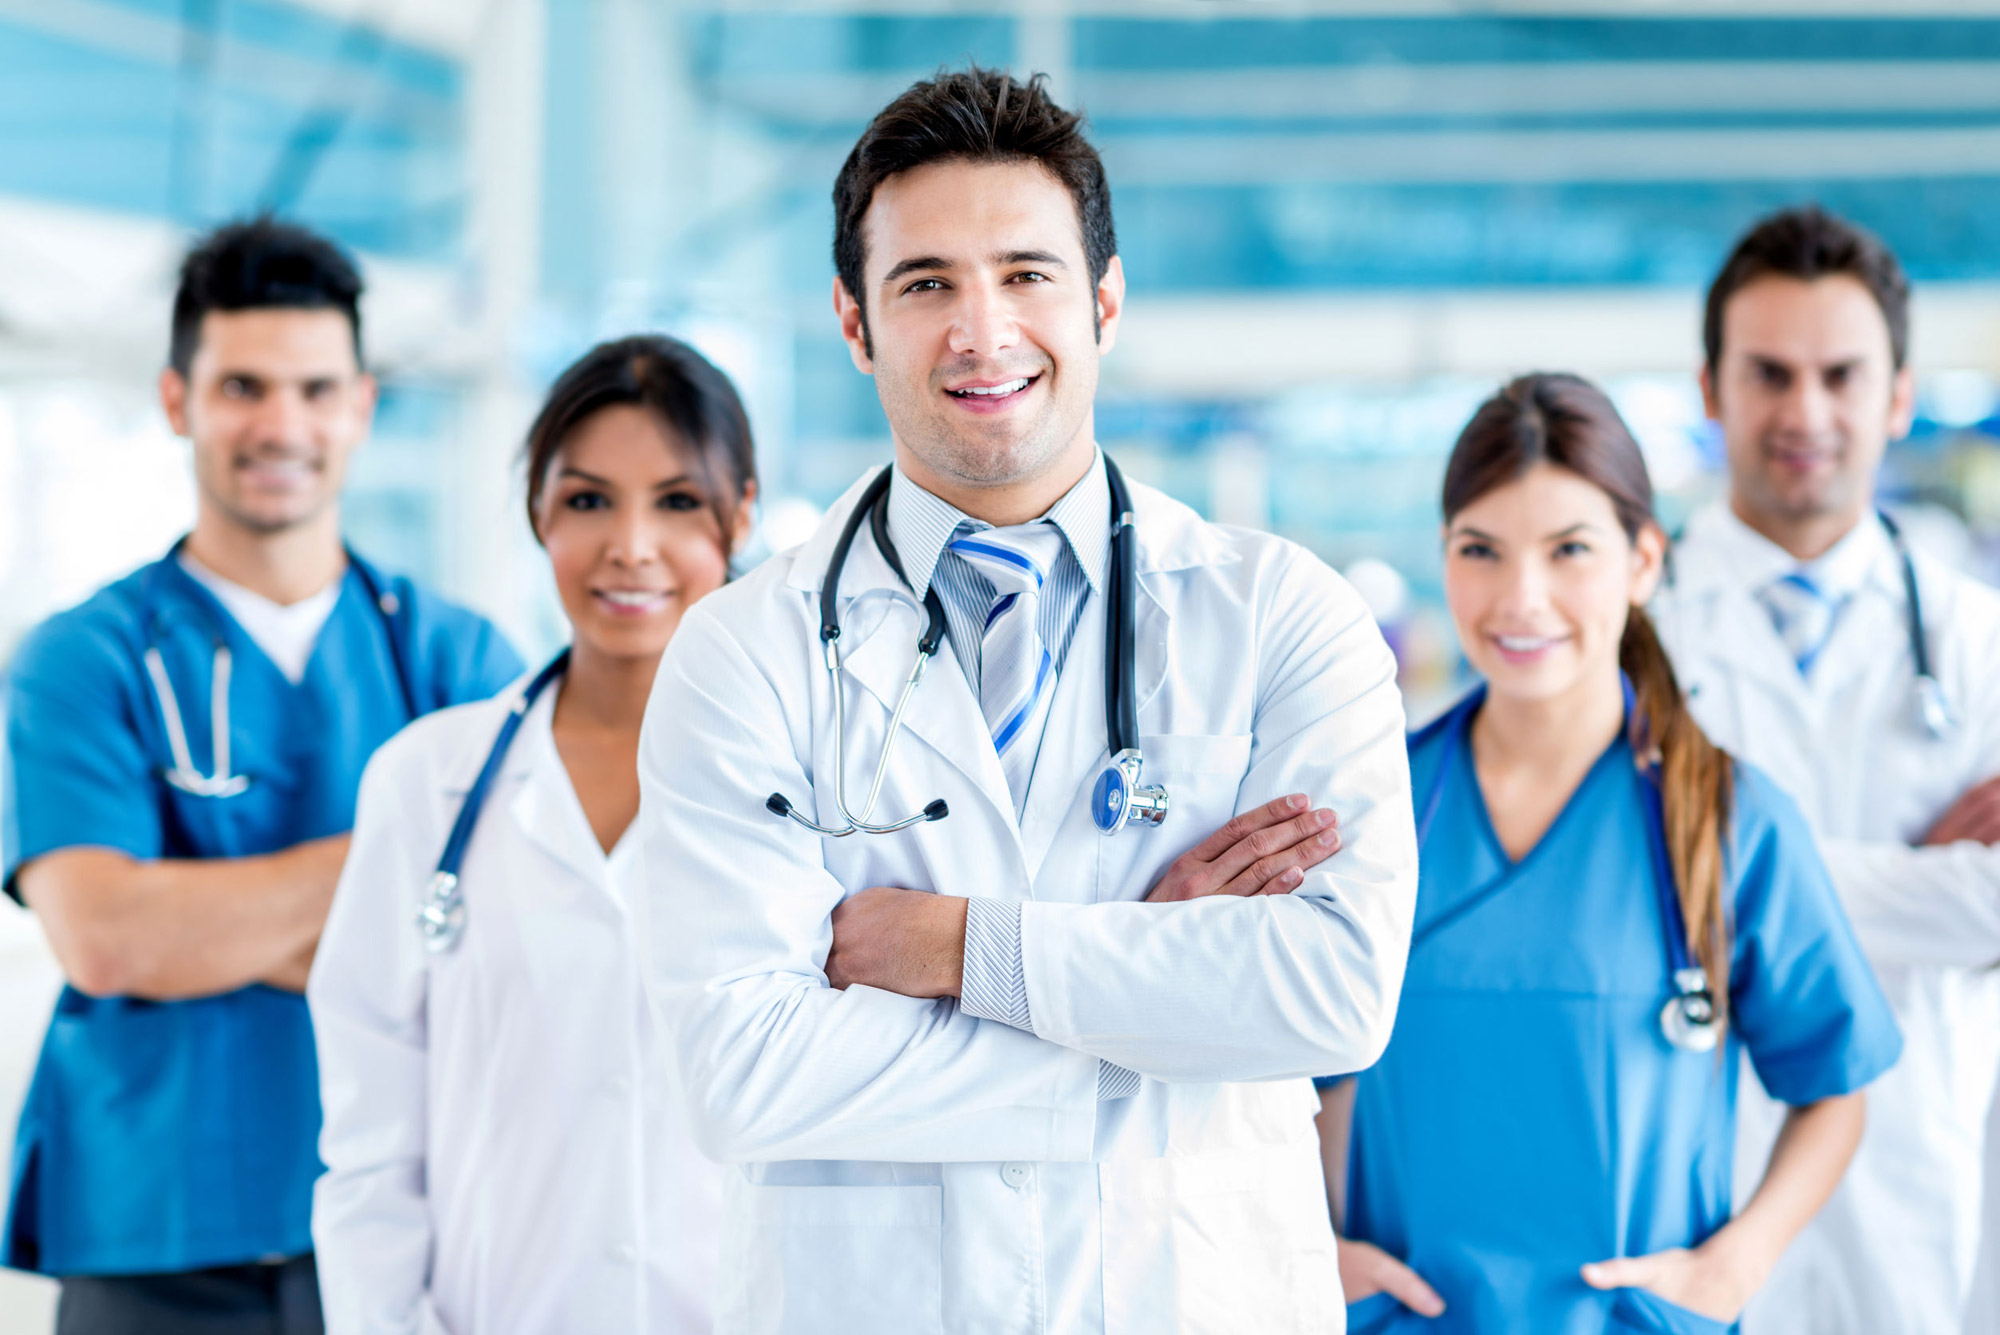 We can provide health professionals to cover last minute absentees for your health facility.